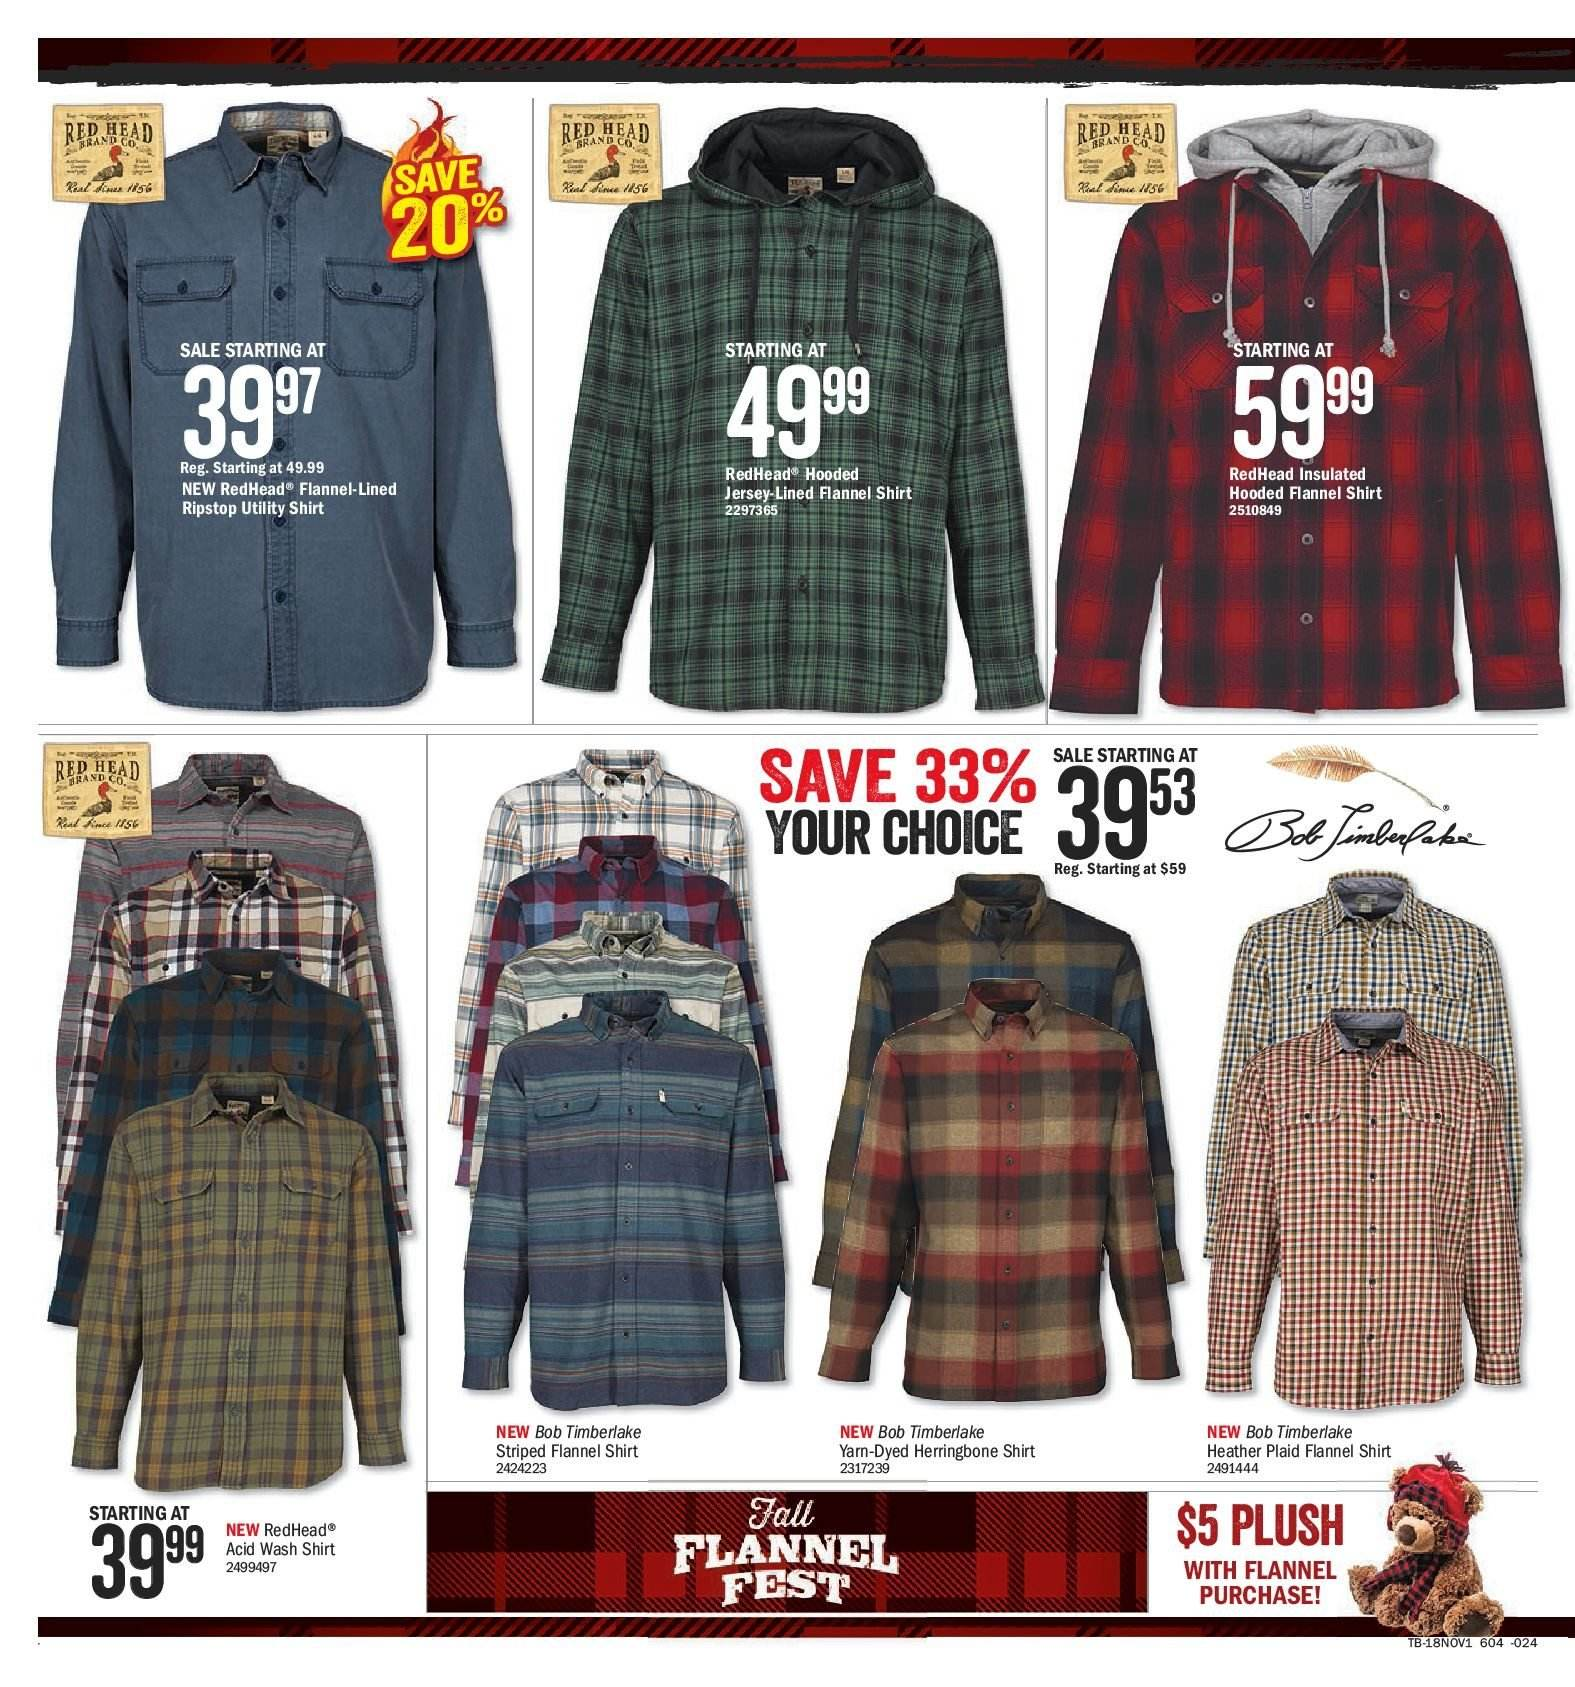 Bass Pro Shops Flyer  - October 19, 2018 - November 04, 2018. Page 18.